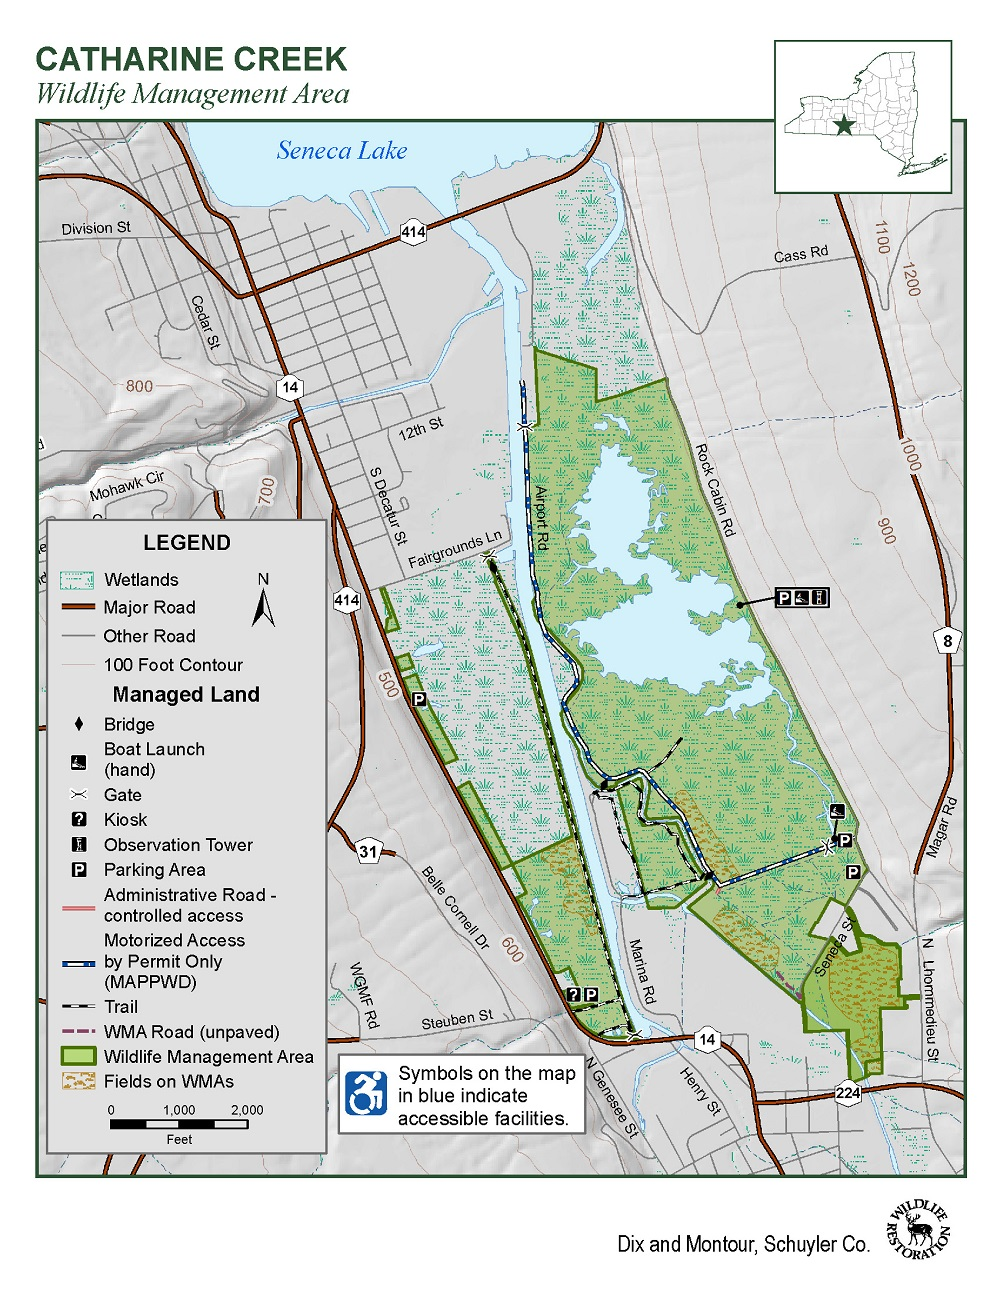 Catharine Creek WMA Map